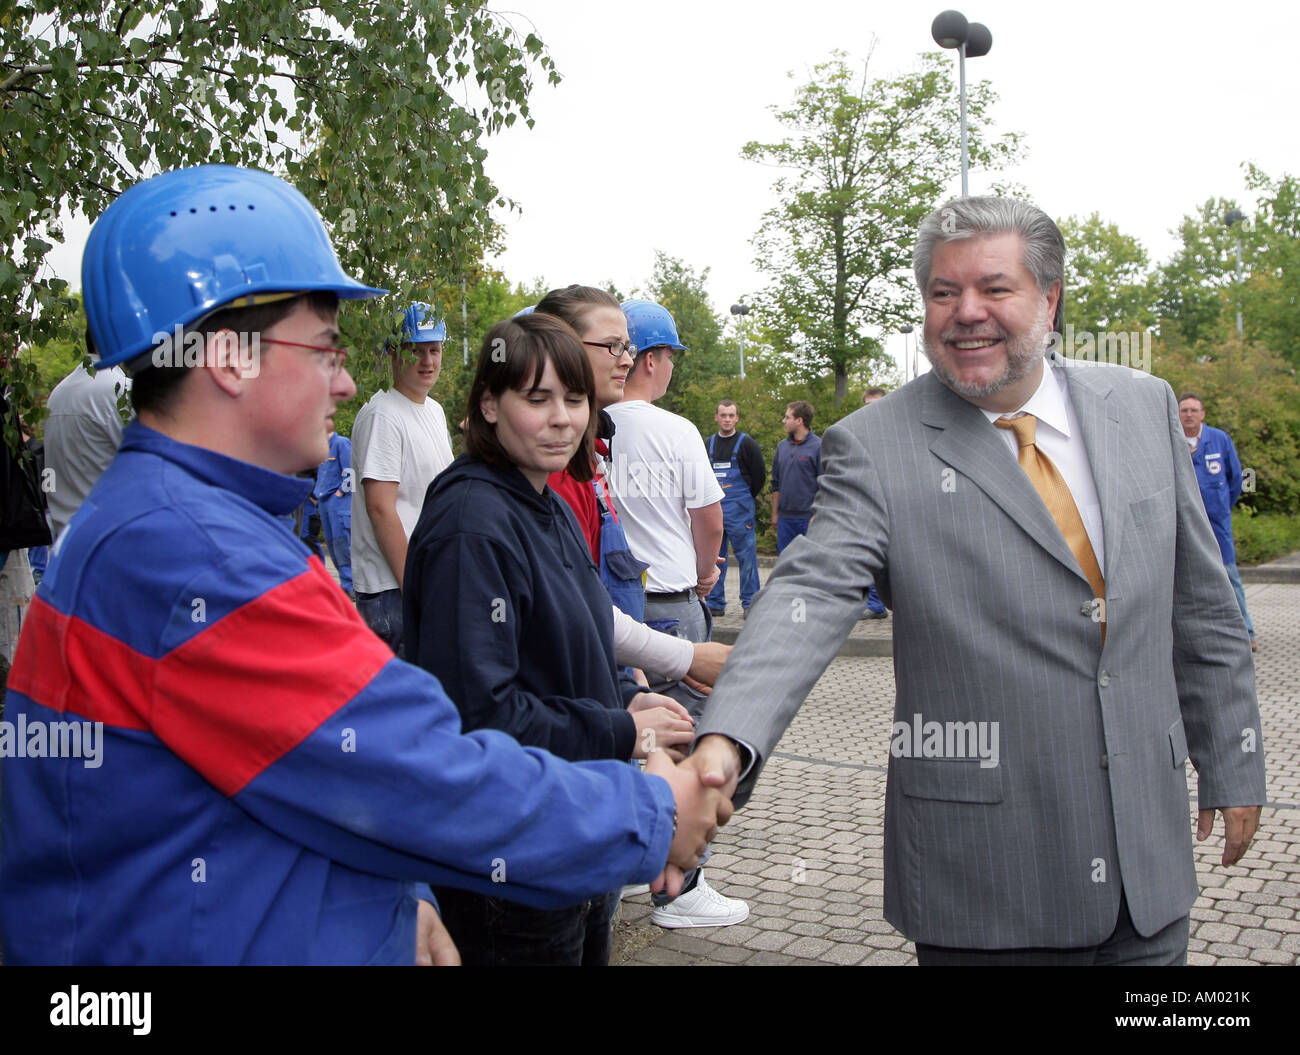 Kurt Beck, prime minister in rhineland-palatinate and SPD Chairman, shaking hands with trainees - Stock Image